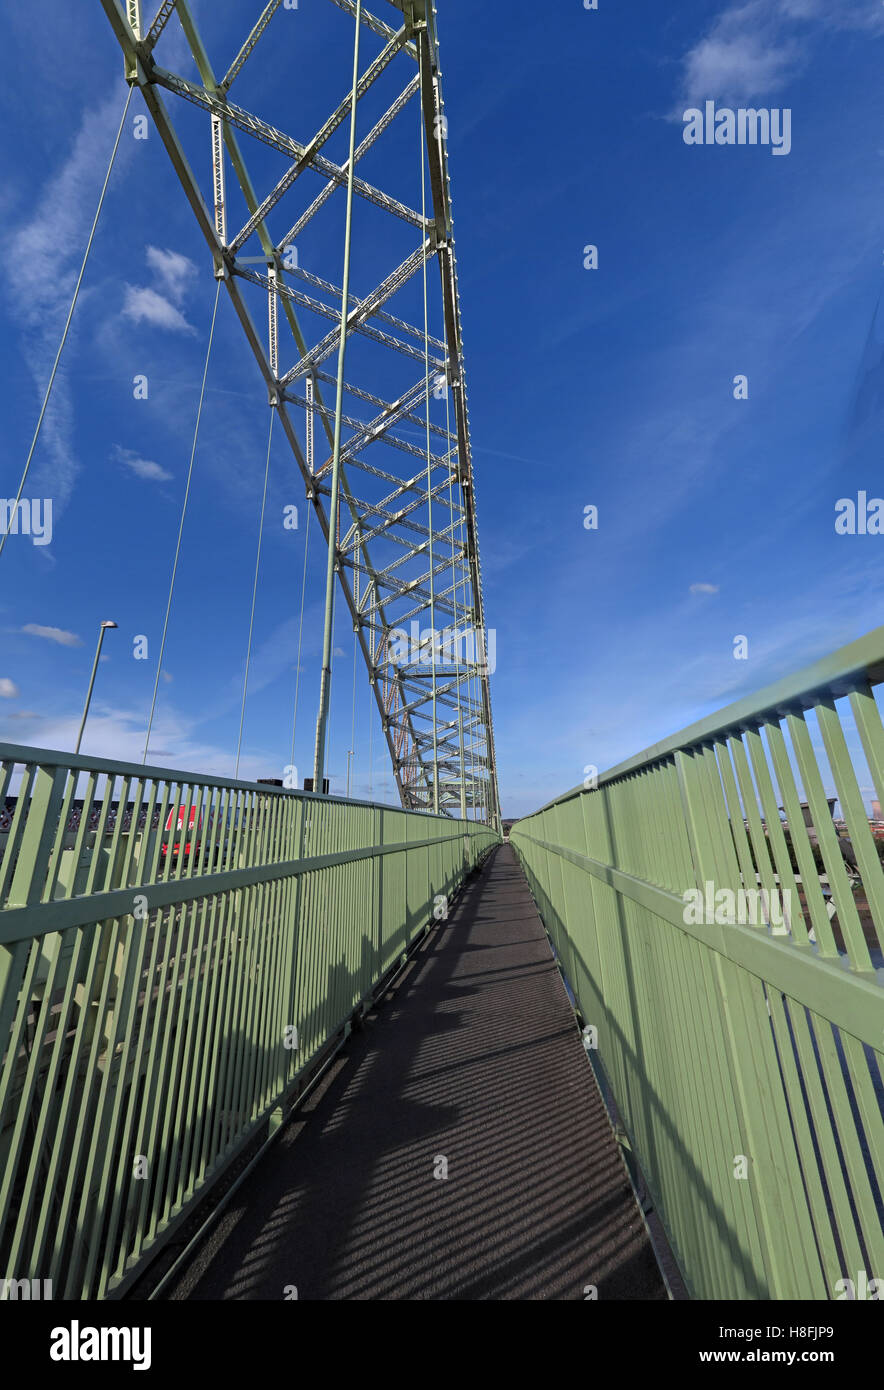 Runcorn to Widnes Silver Jubilee road bridge walkway, A533, Halton, Cheshire, England, UK - Stock Image